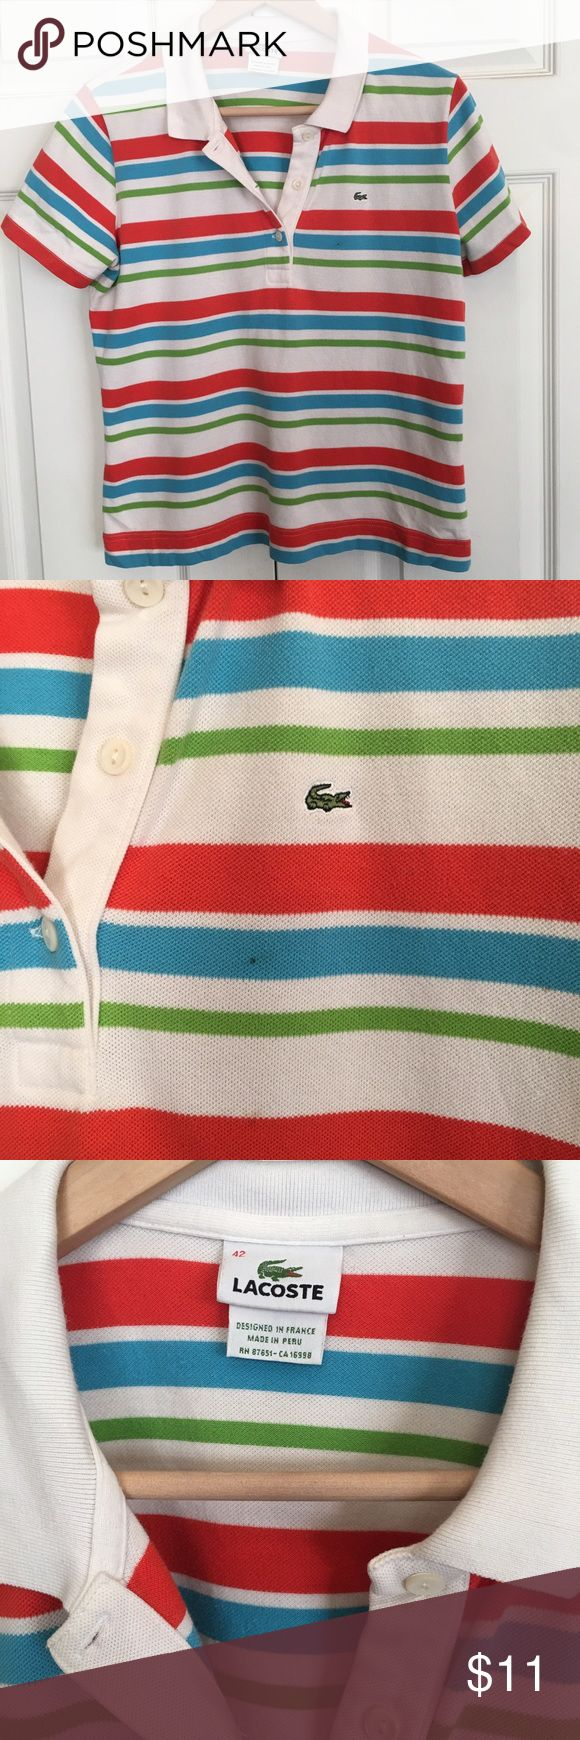 Lacoste Polo Shirt Size medium (42) Lacoste Polo Shirt Size medium (42). Small black dot seen in picture Lacoste Tops